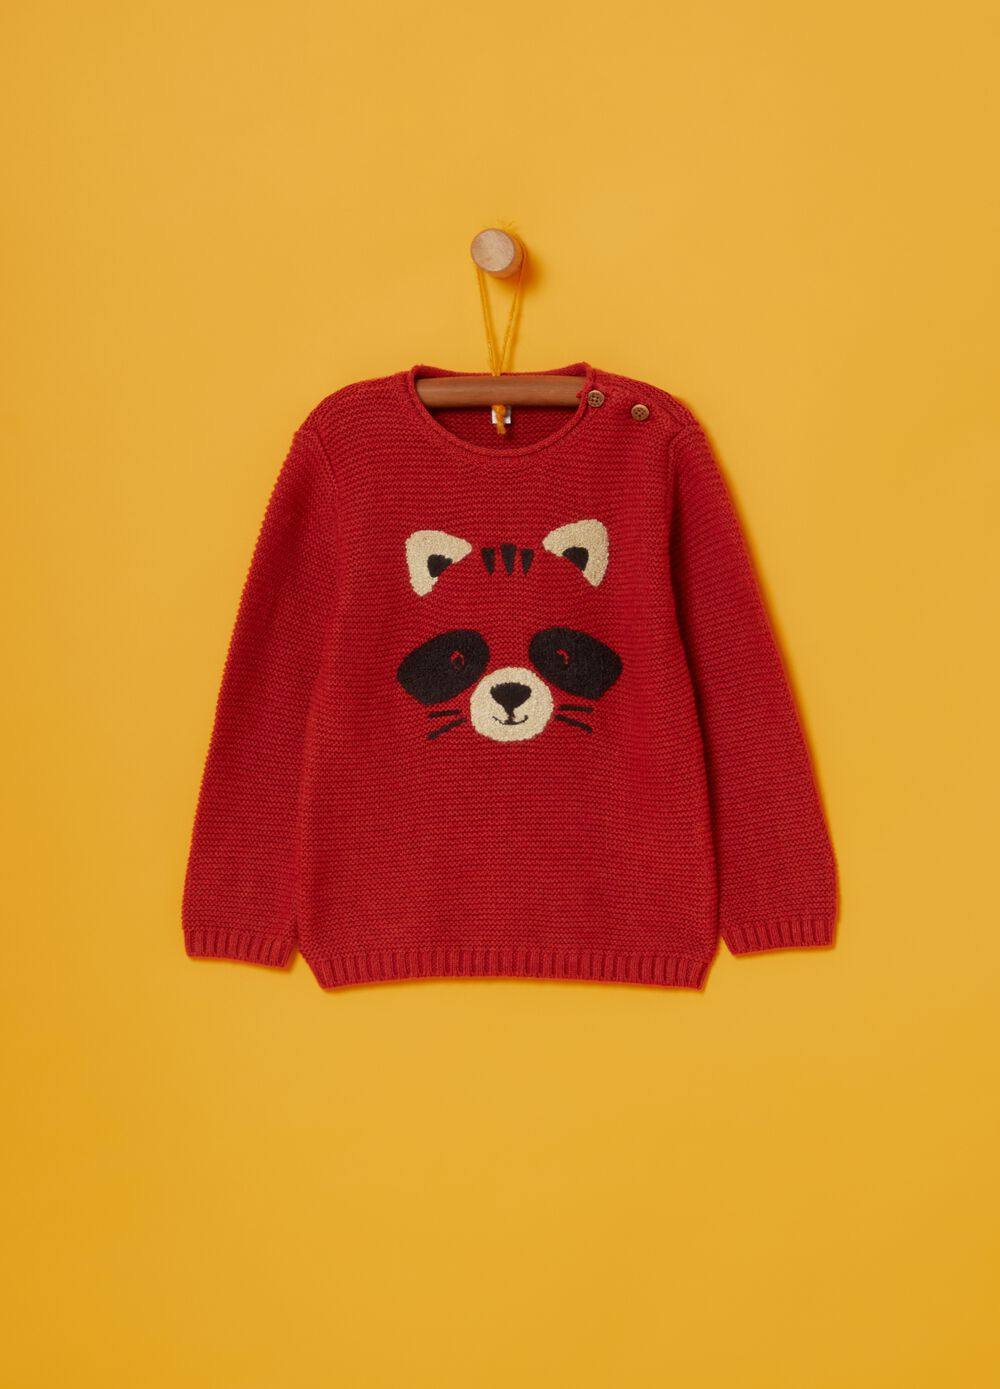 Knitted crew-neck jumper with working bear embroidery